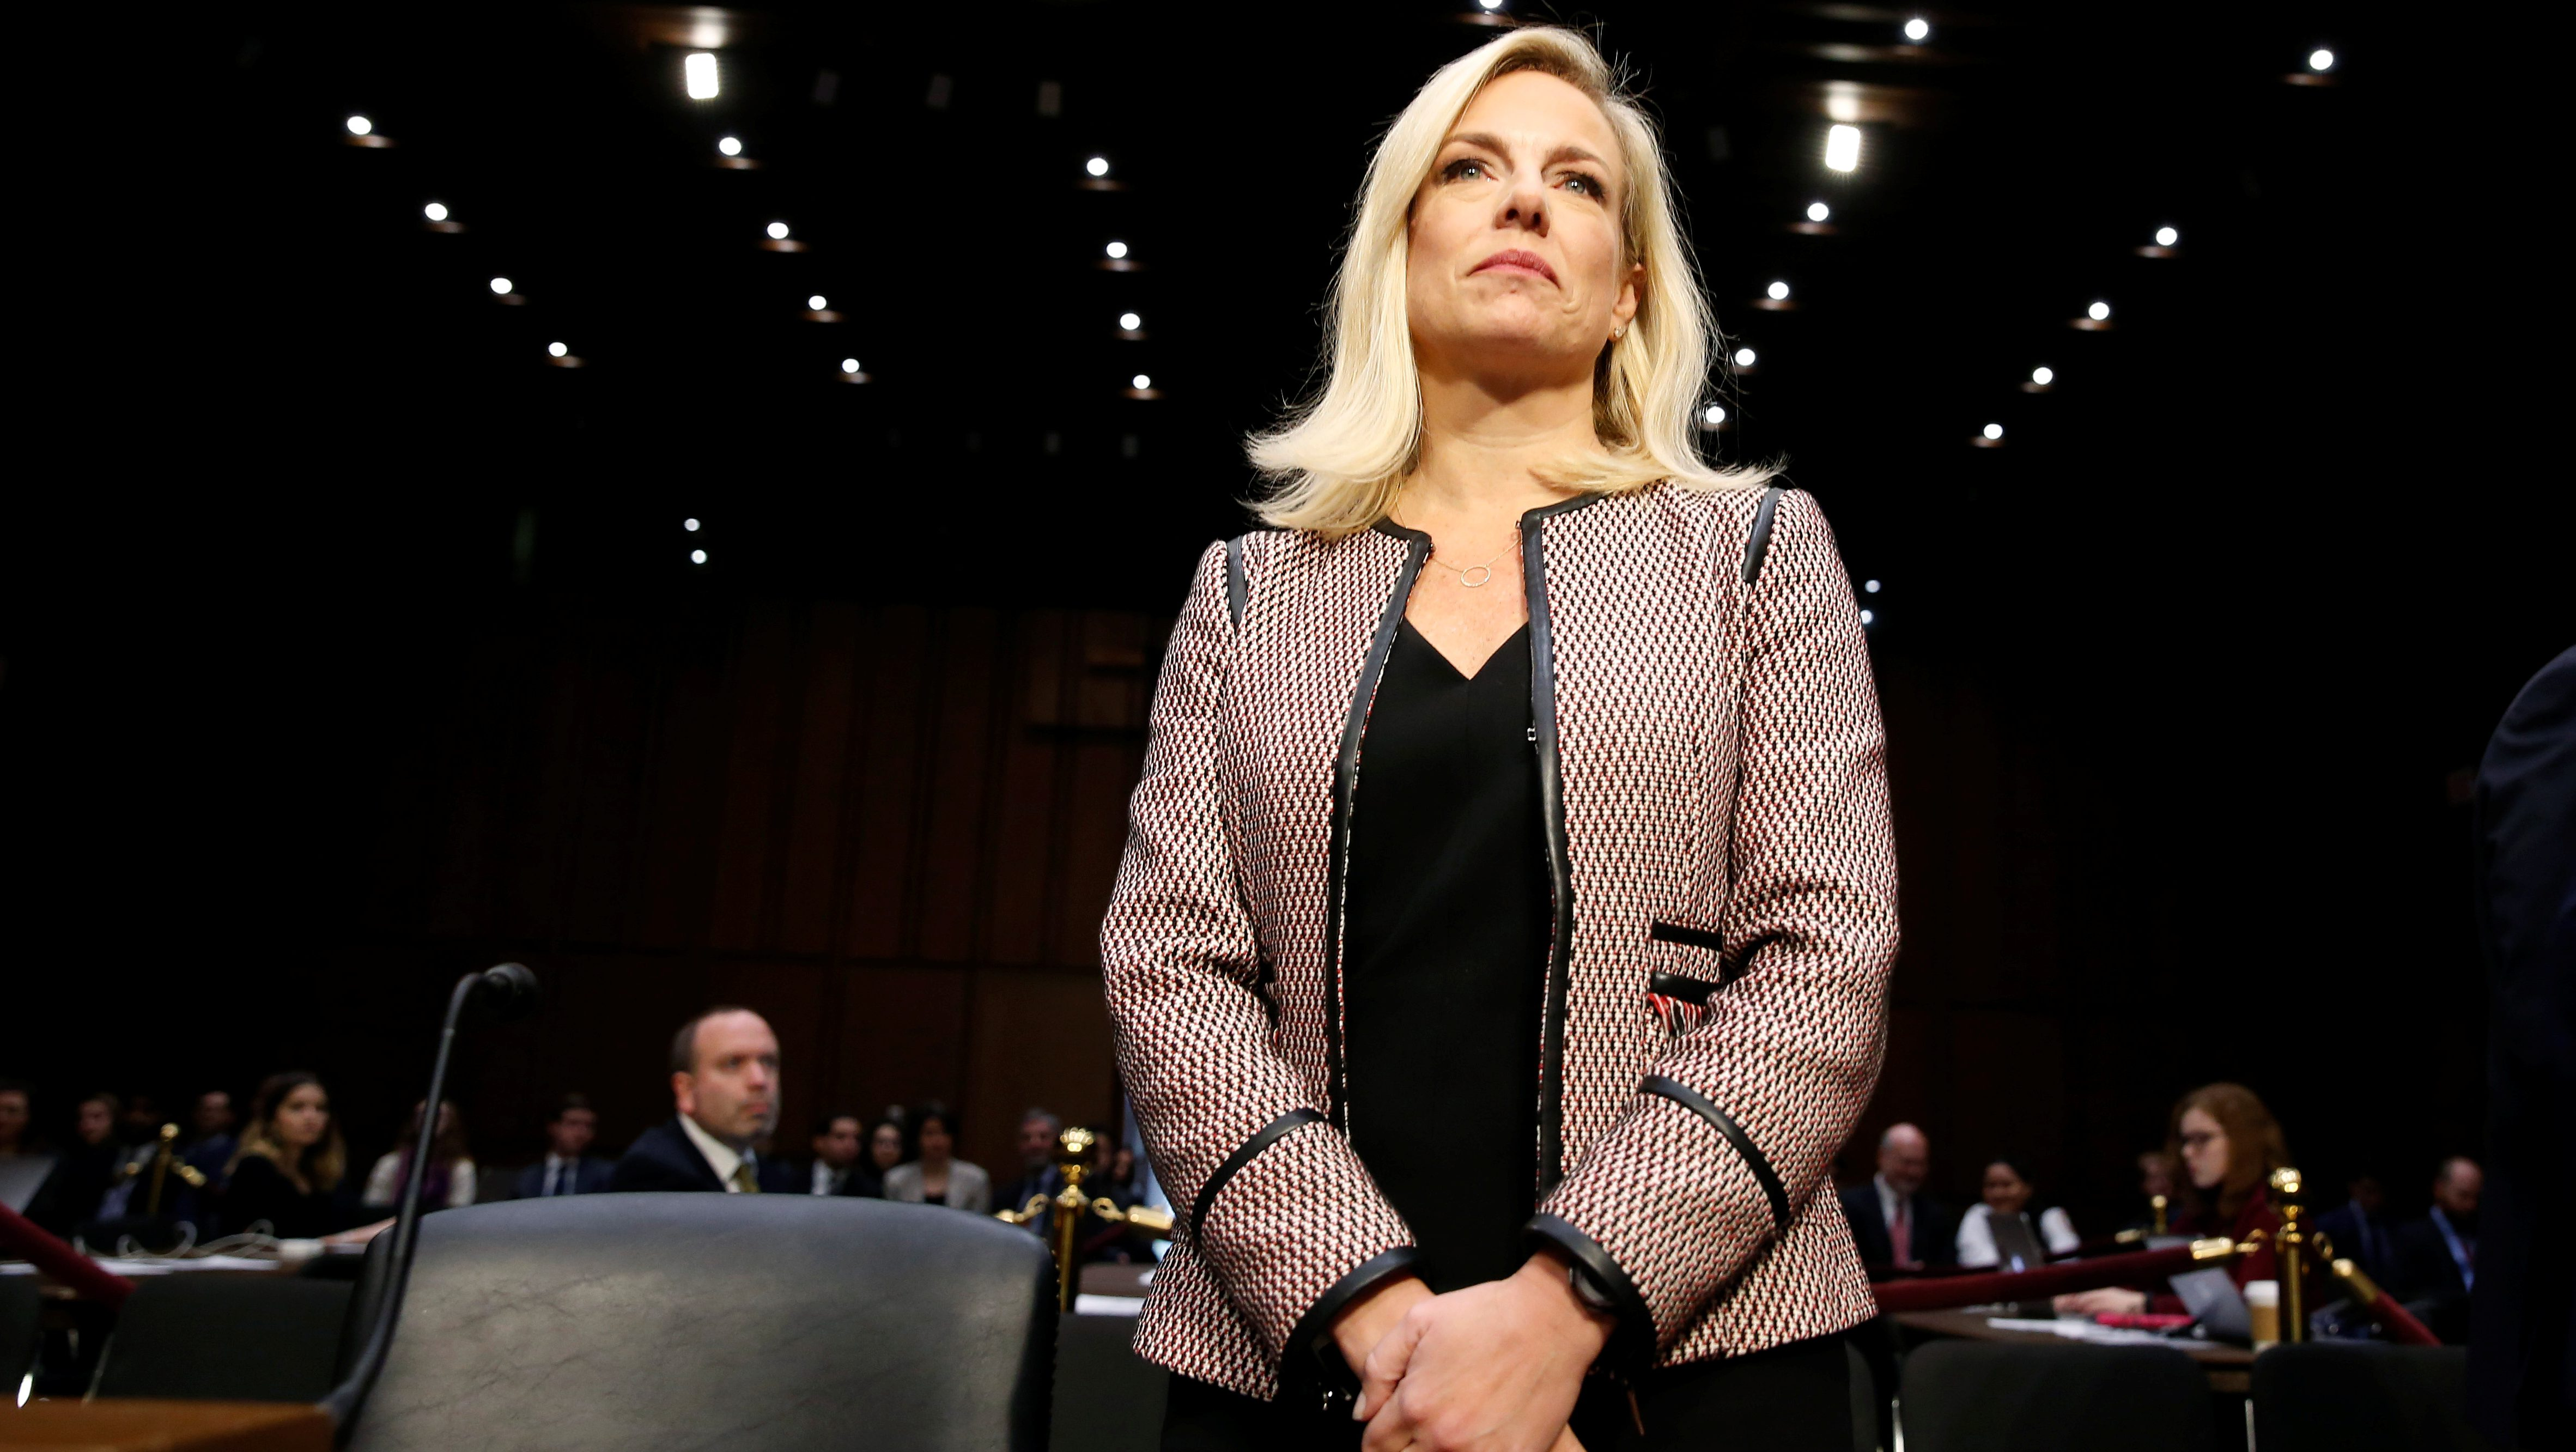 """U.S. Secretary of Homeland Security Kirstjen Nielsen testifies to the Senate Judiciary Committee on """"Oversight of the U.S. Department of Homeland Security"""" on Capitol Hill in Washington, U.S., January 16, 2018.      REUTERS/Joshua Roberts - RC12C5CCC950"""